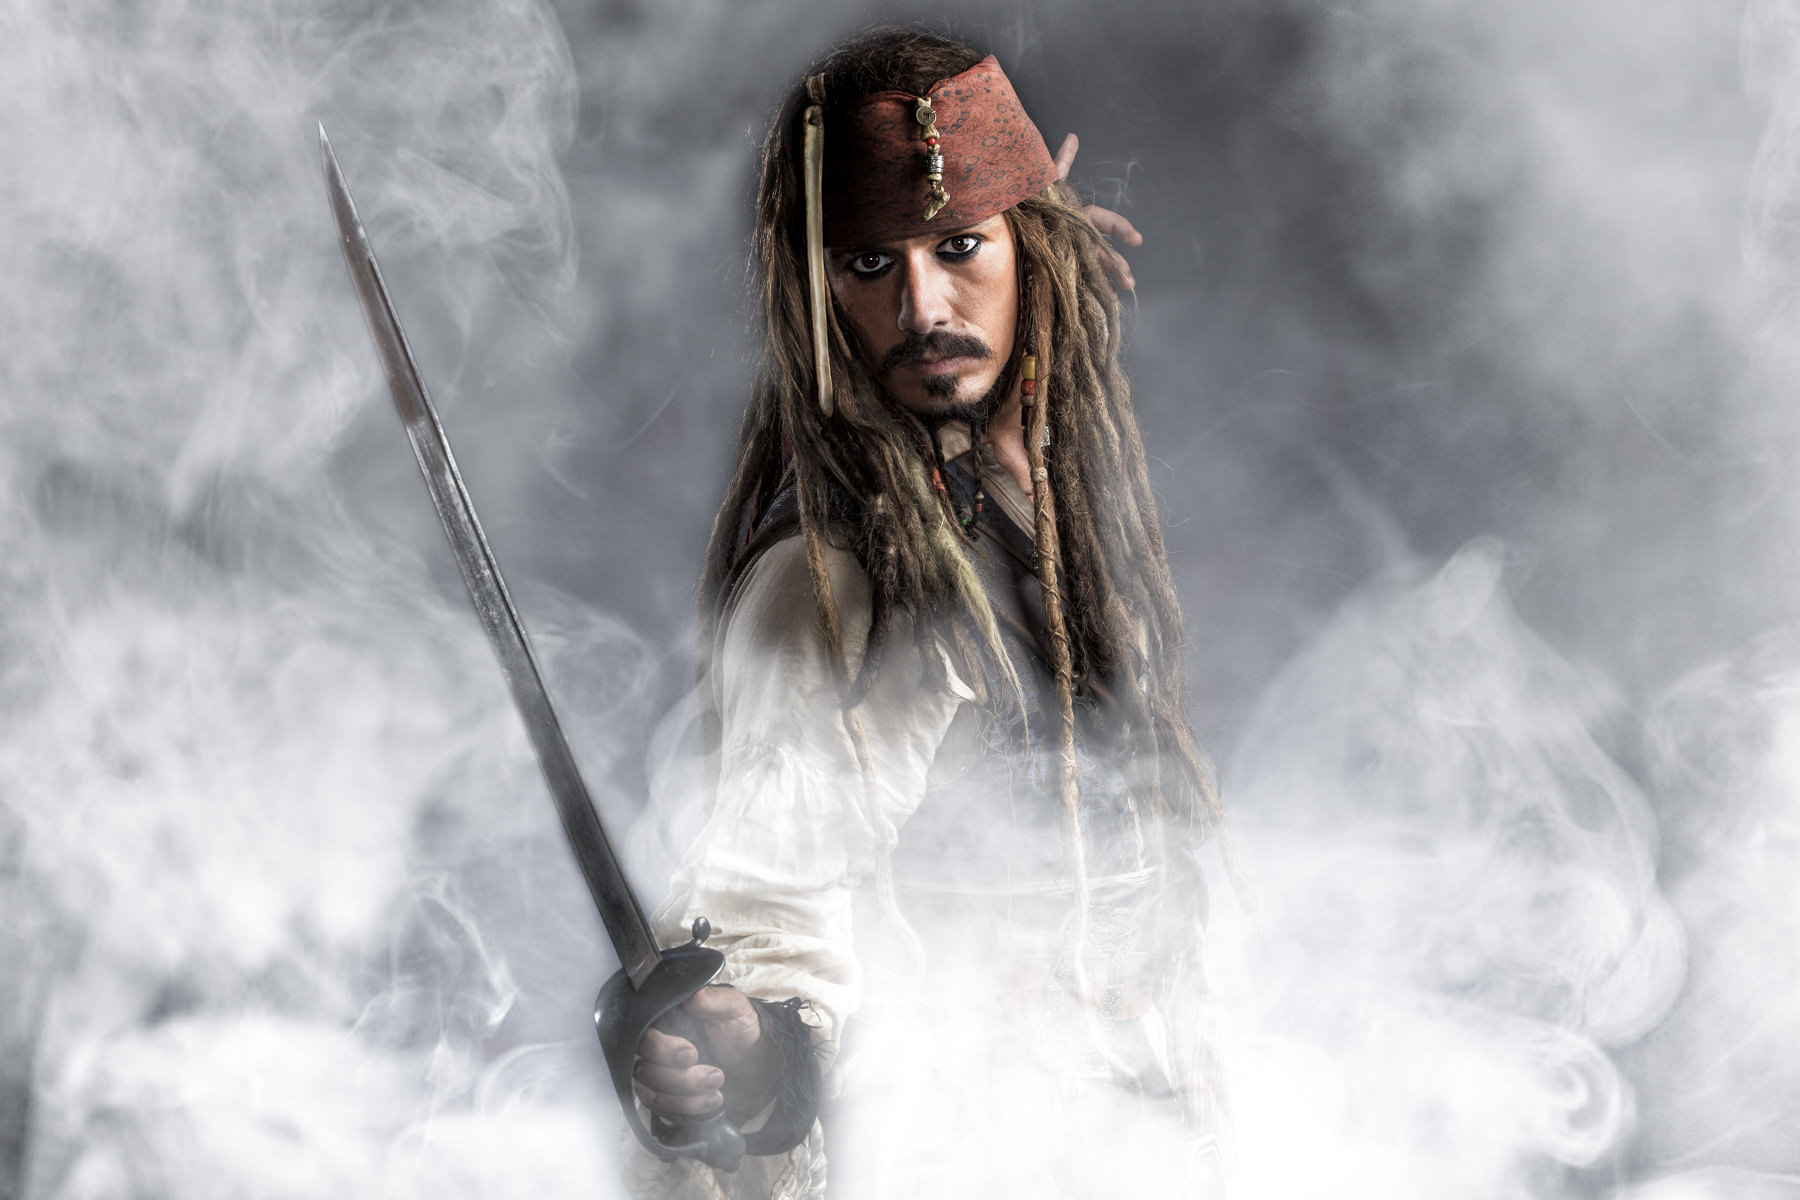 Jack Sparrow with sword in smoke